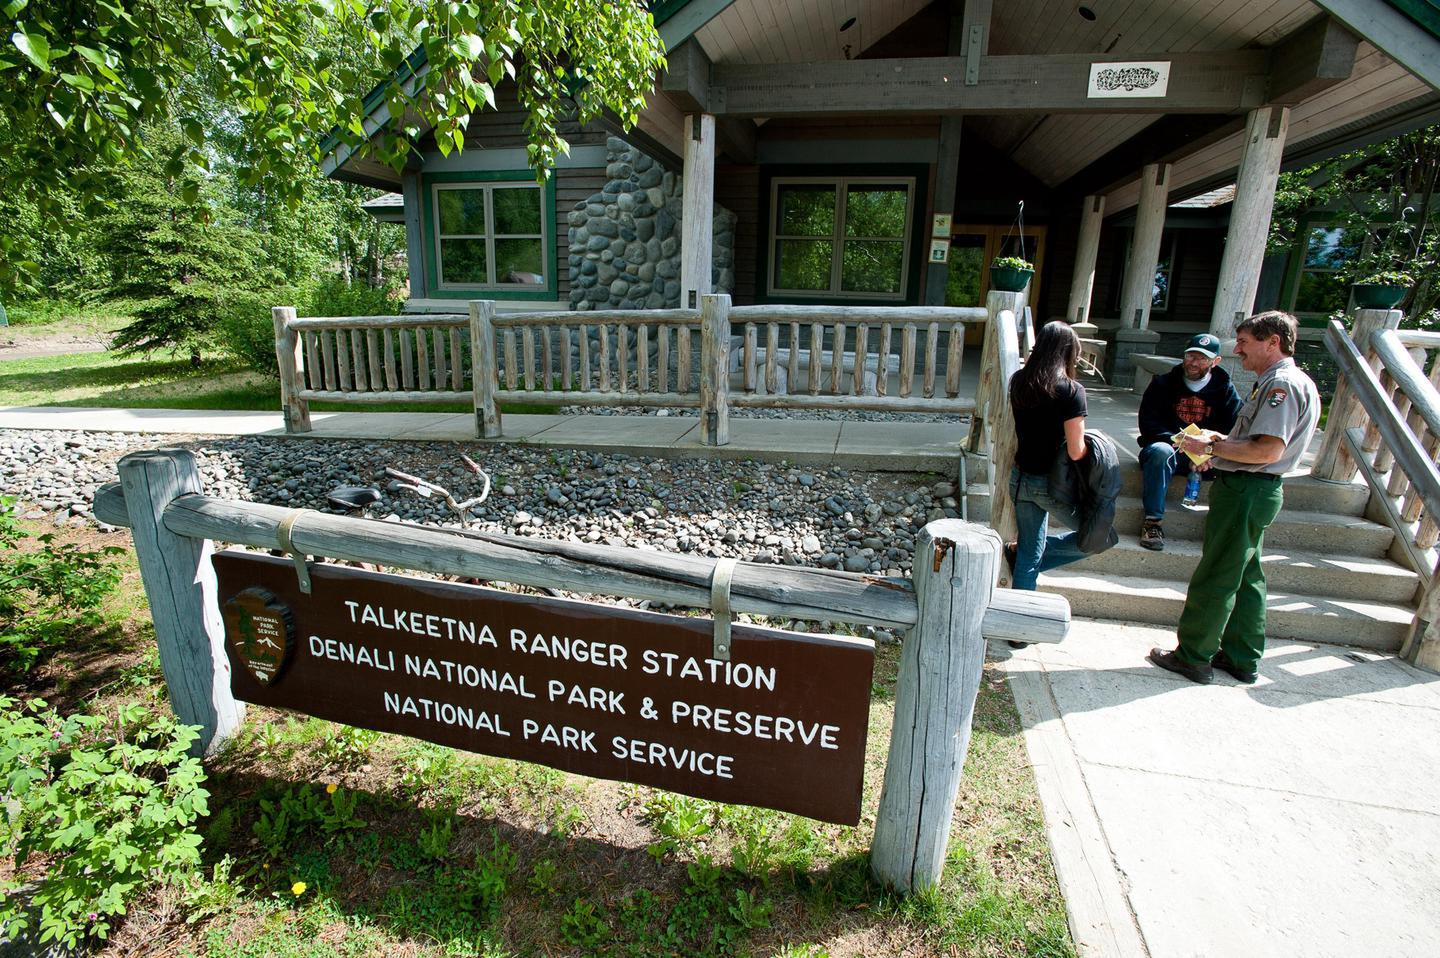 Walter Harper Talkeetna Ranger StationThe Walter Harper Talkeetna Ranger Station is the starting point for all mountaineers wishing to attempt Denali